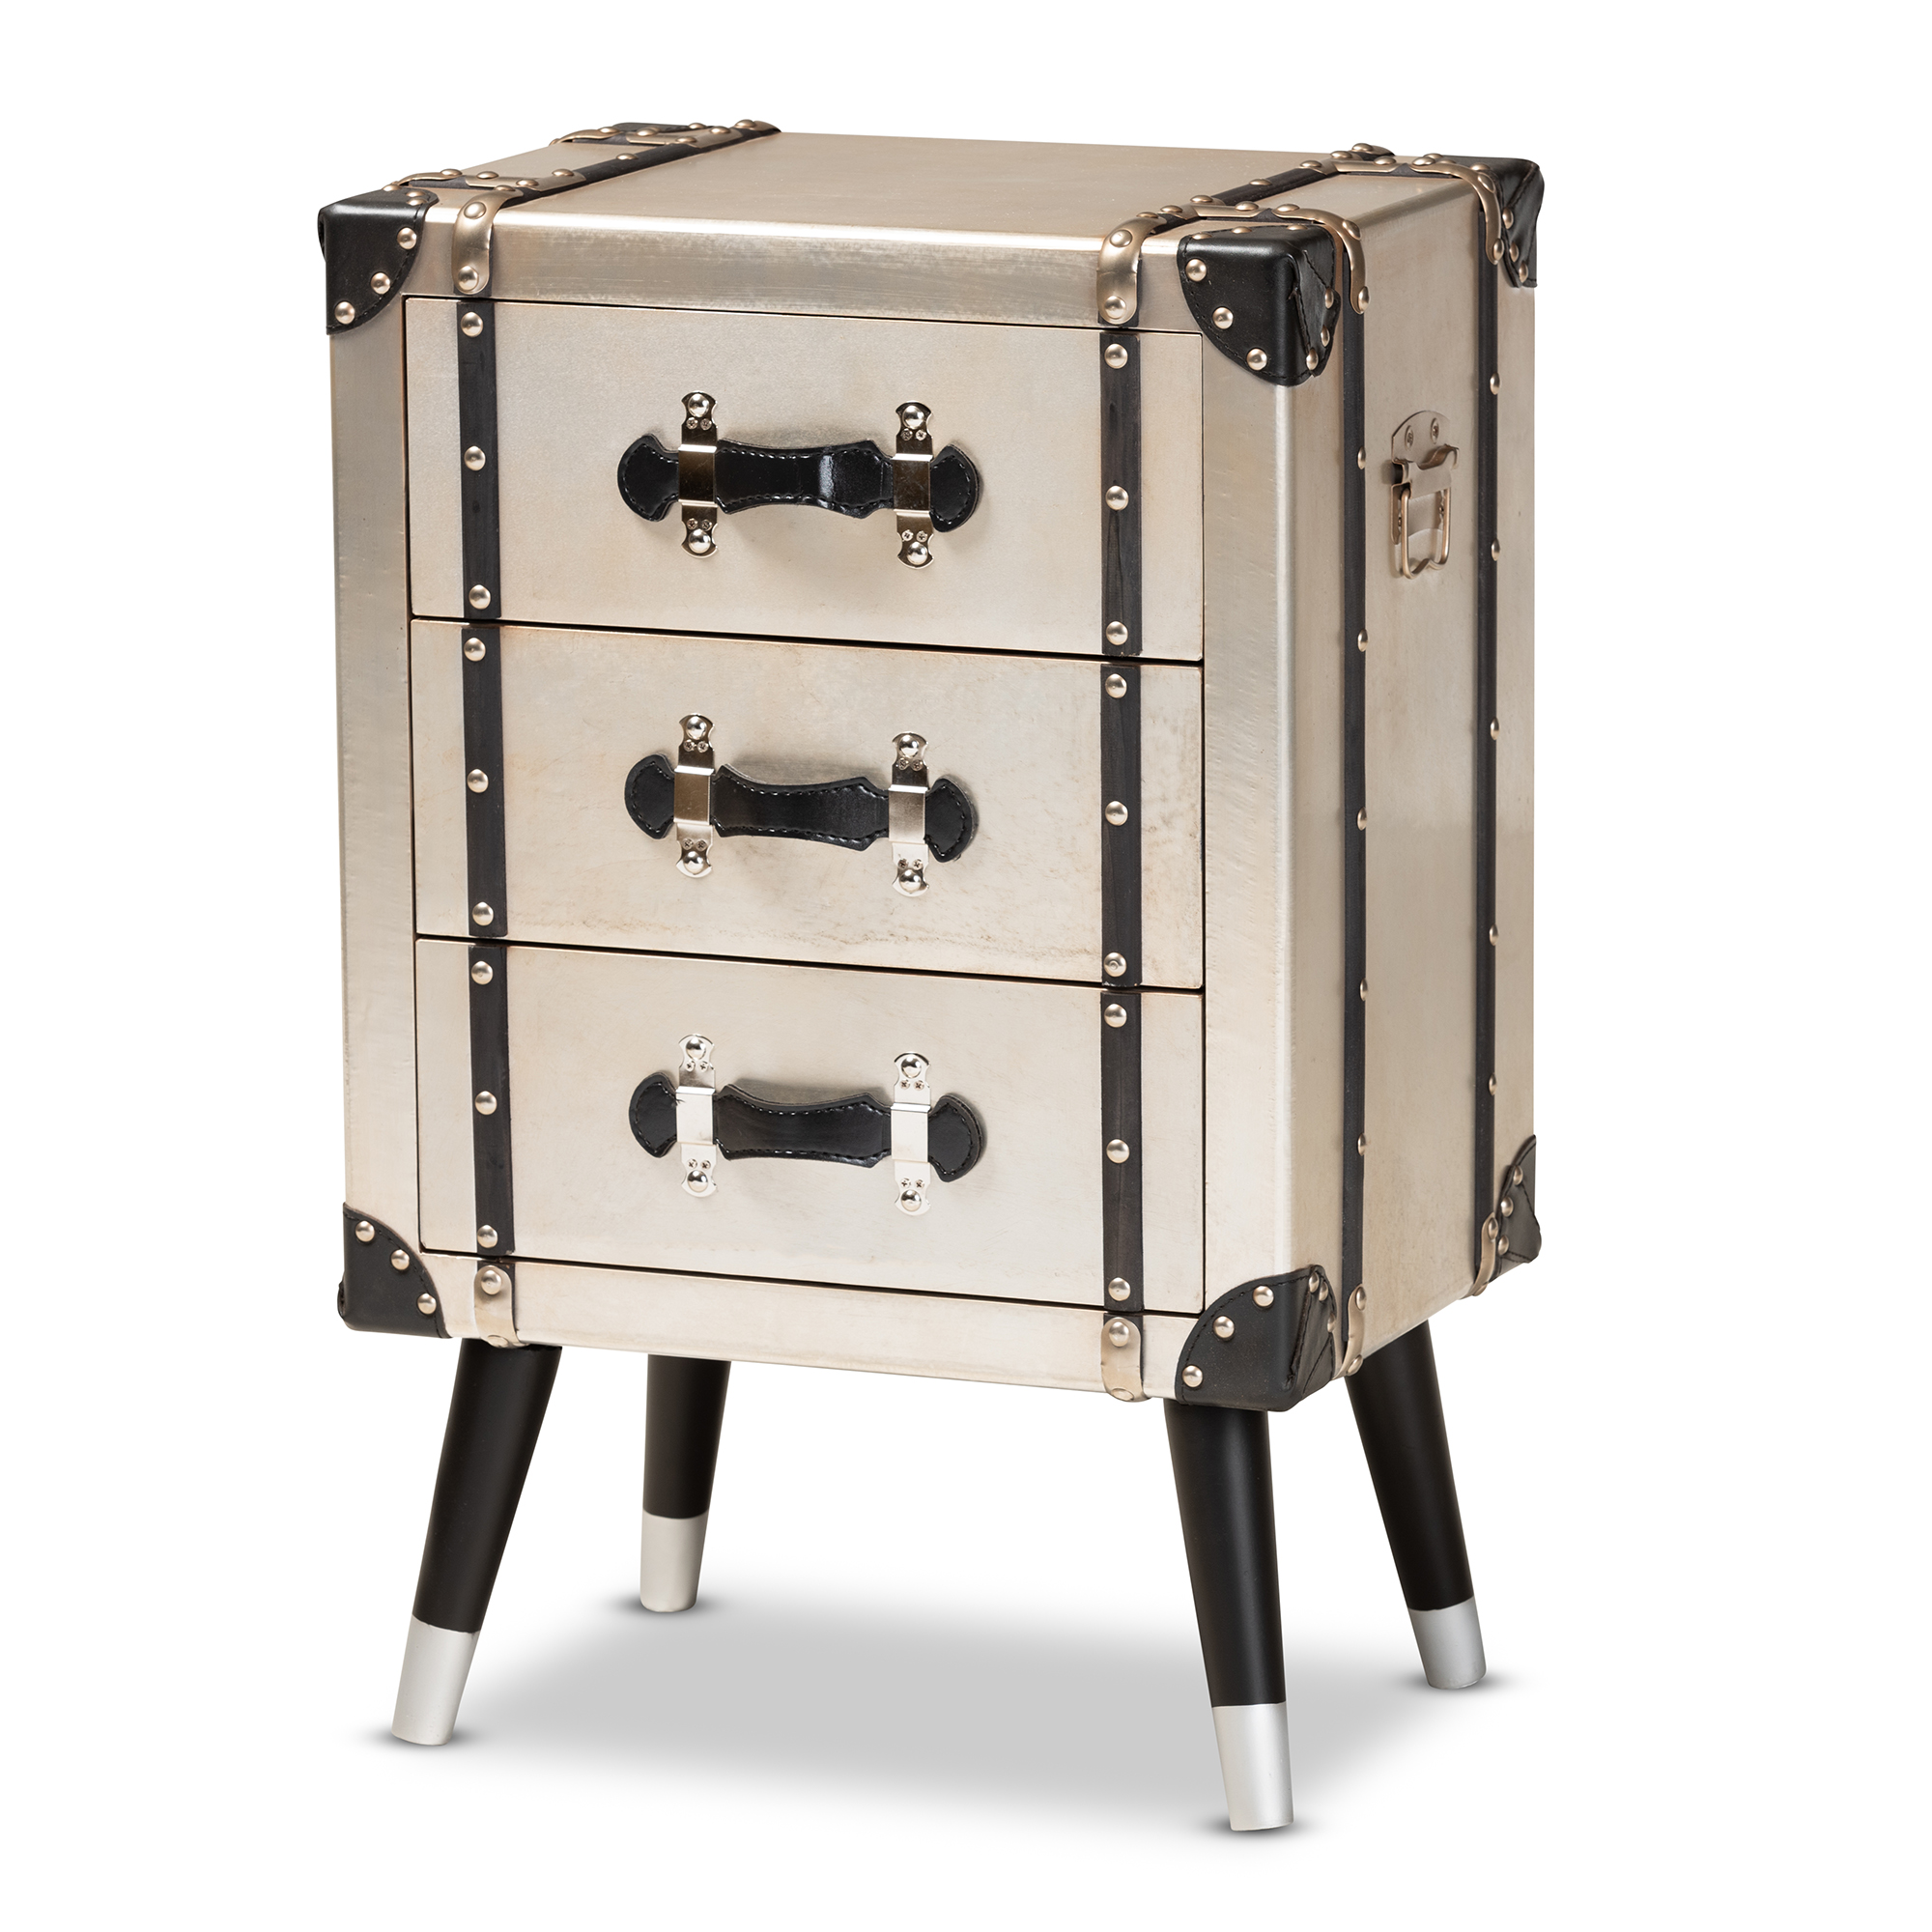 Baxton Studio Dilan Vintage Industrial Antique Silver Finished Metal Trunk Inspired 3 Drawer Nightstand